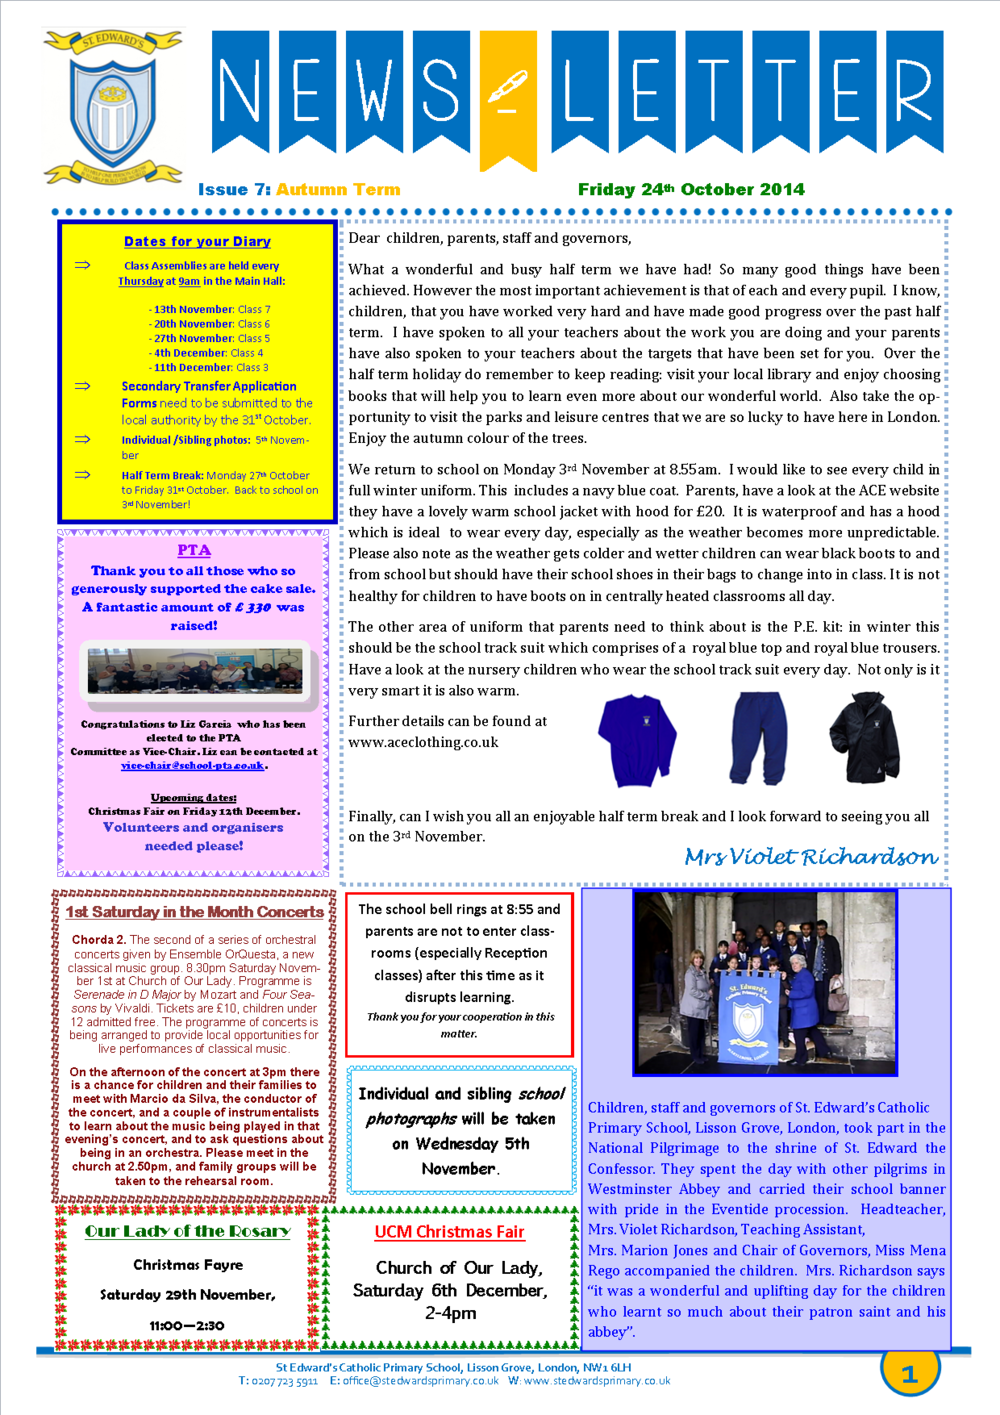 St Edward's Newsletter Issue 7 24 October 2014.png